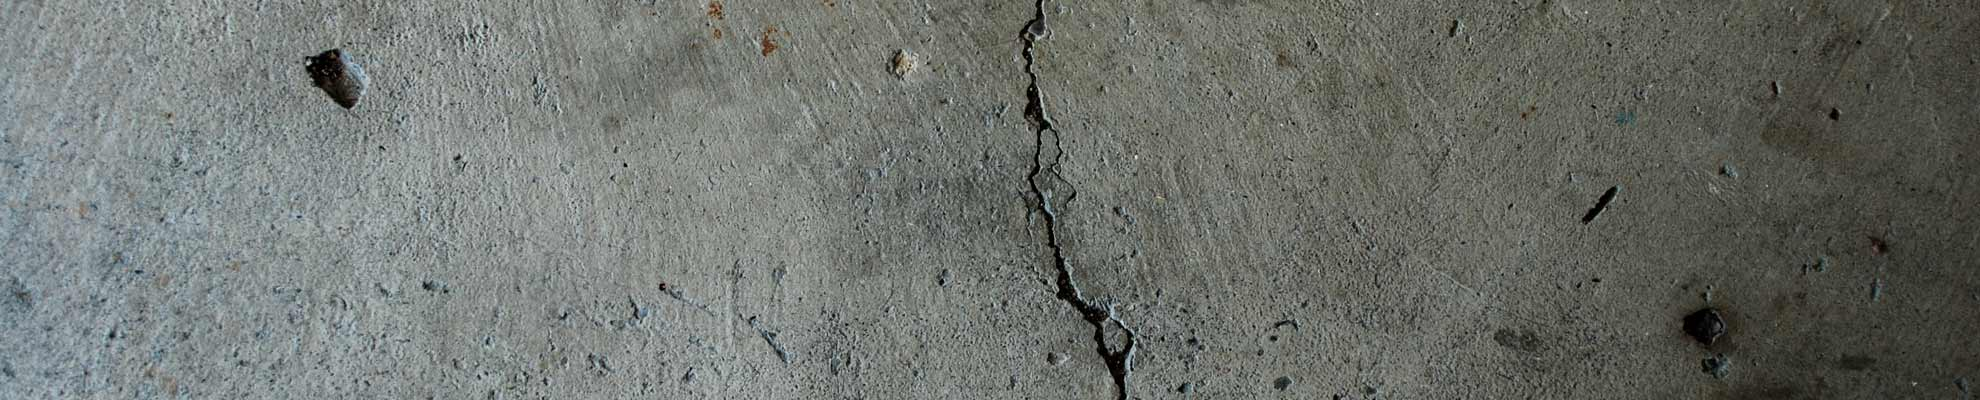 Concrete Crack Before Repair